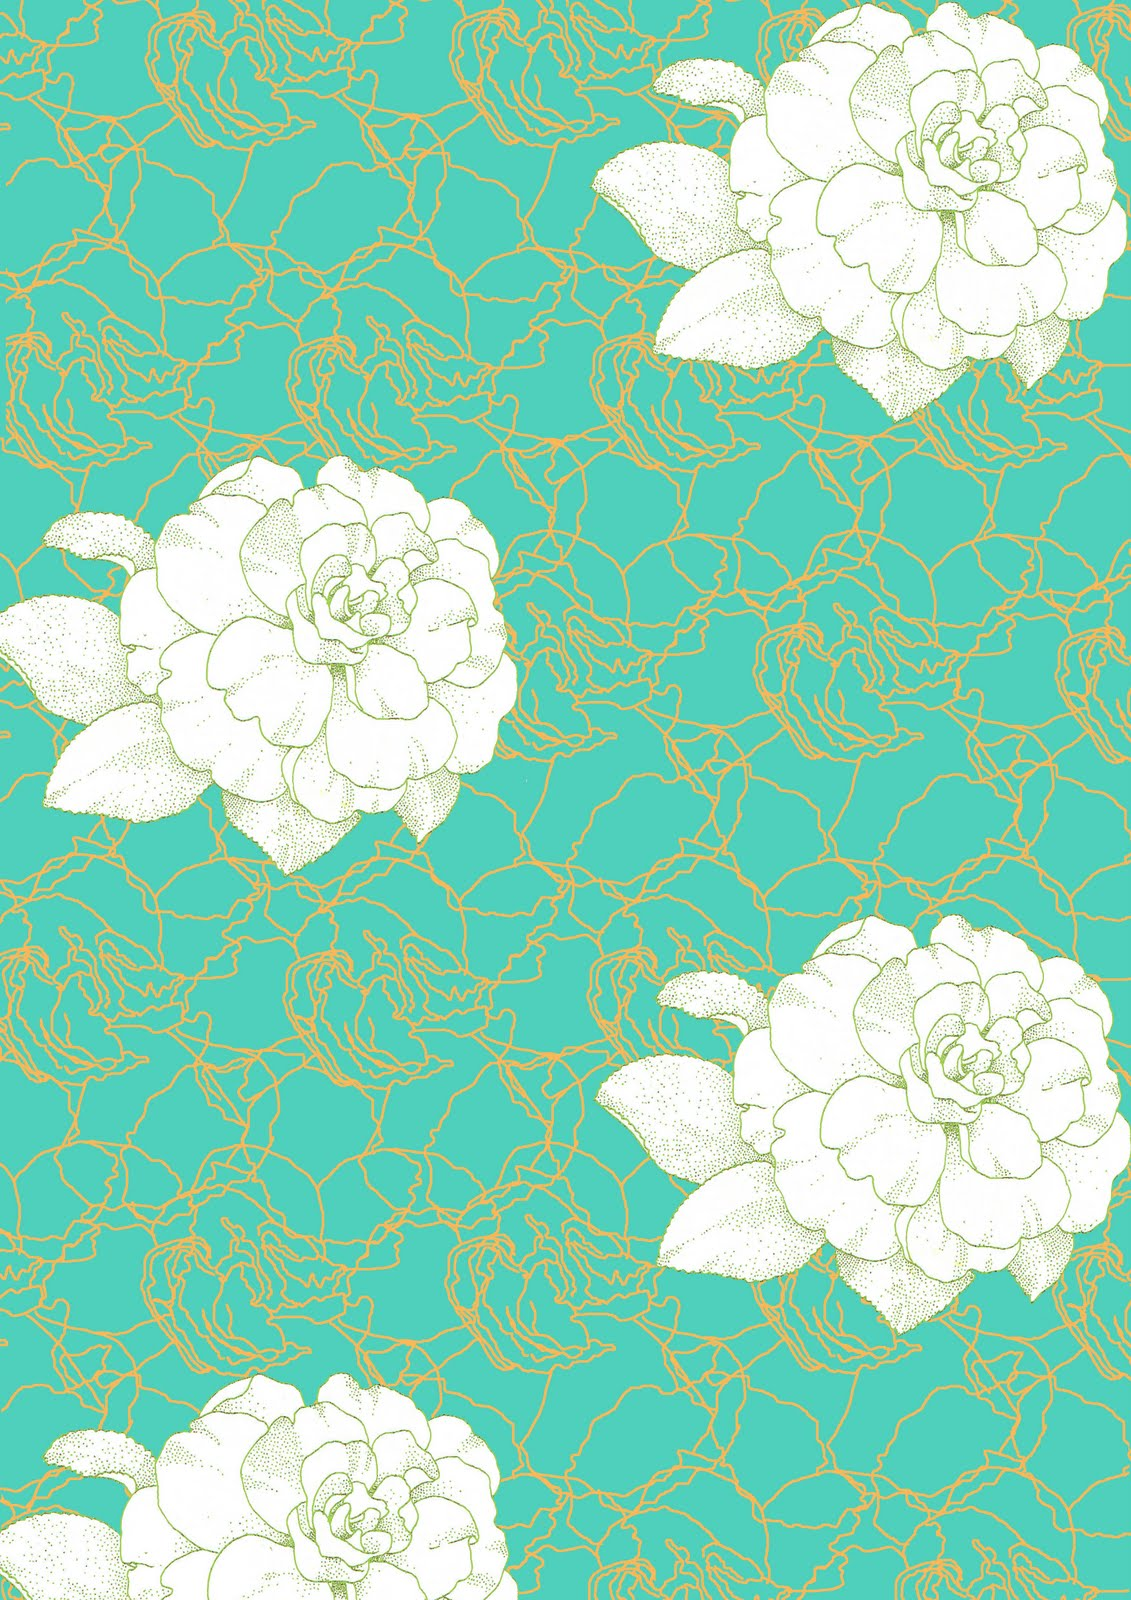 http://3.bp.blogspot.com/_PwO8h2l_l1Y/TJCjNh96iGI/AAAAAAAAABI/Q_Q2l3tj1fE/s1600/carnation+turquois+background+design+in+half+drop+repeat+with+camellia+on+top+copy.jpg